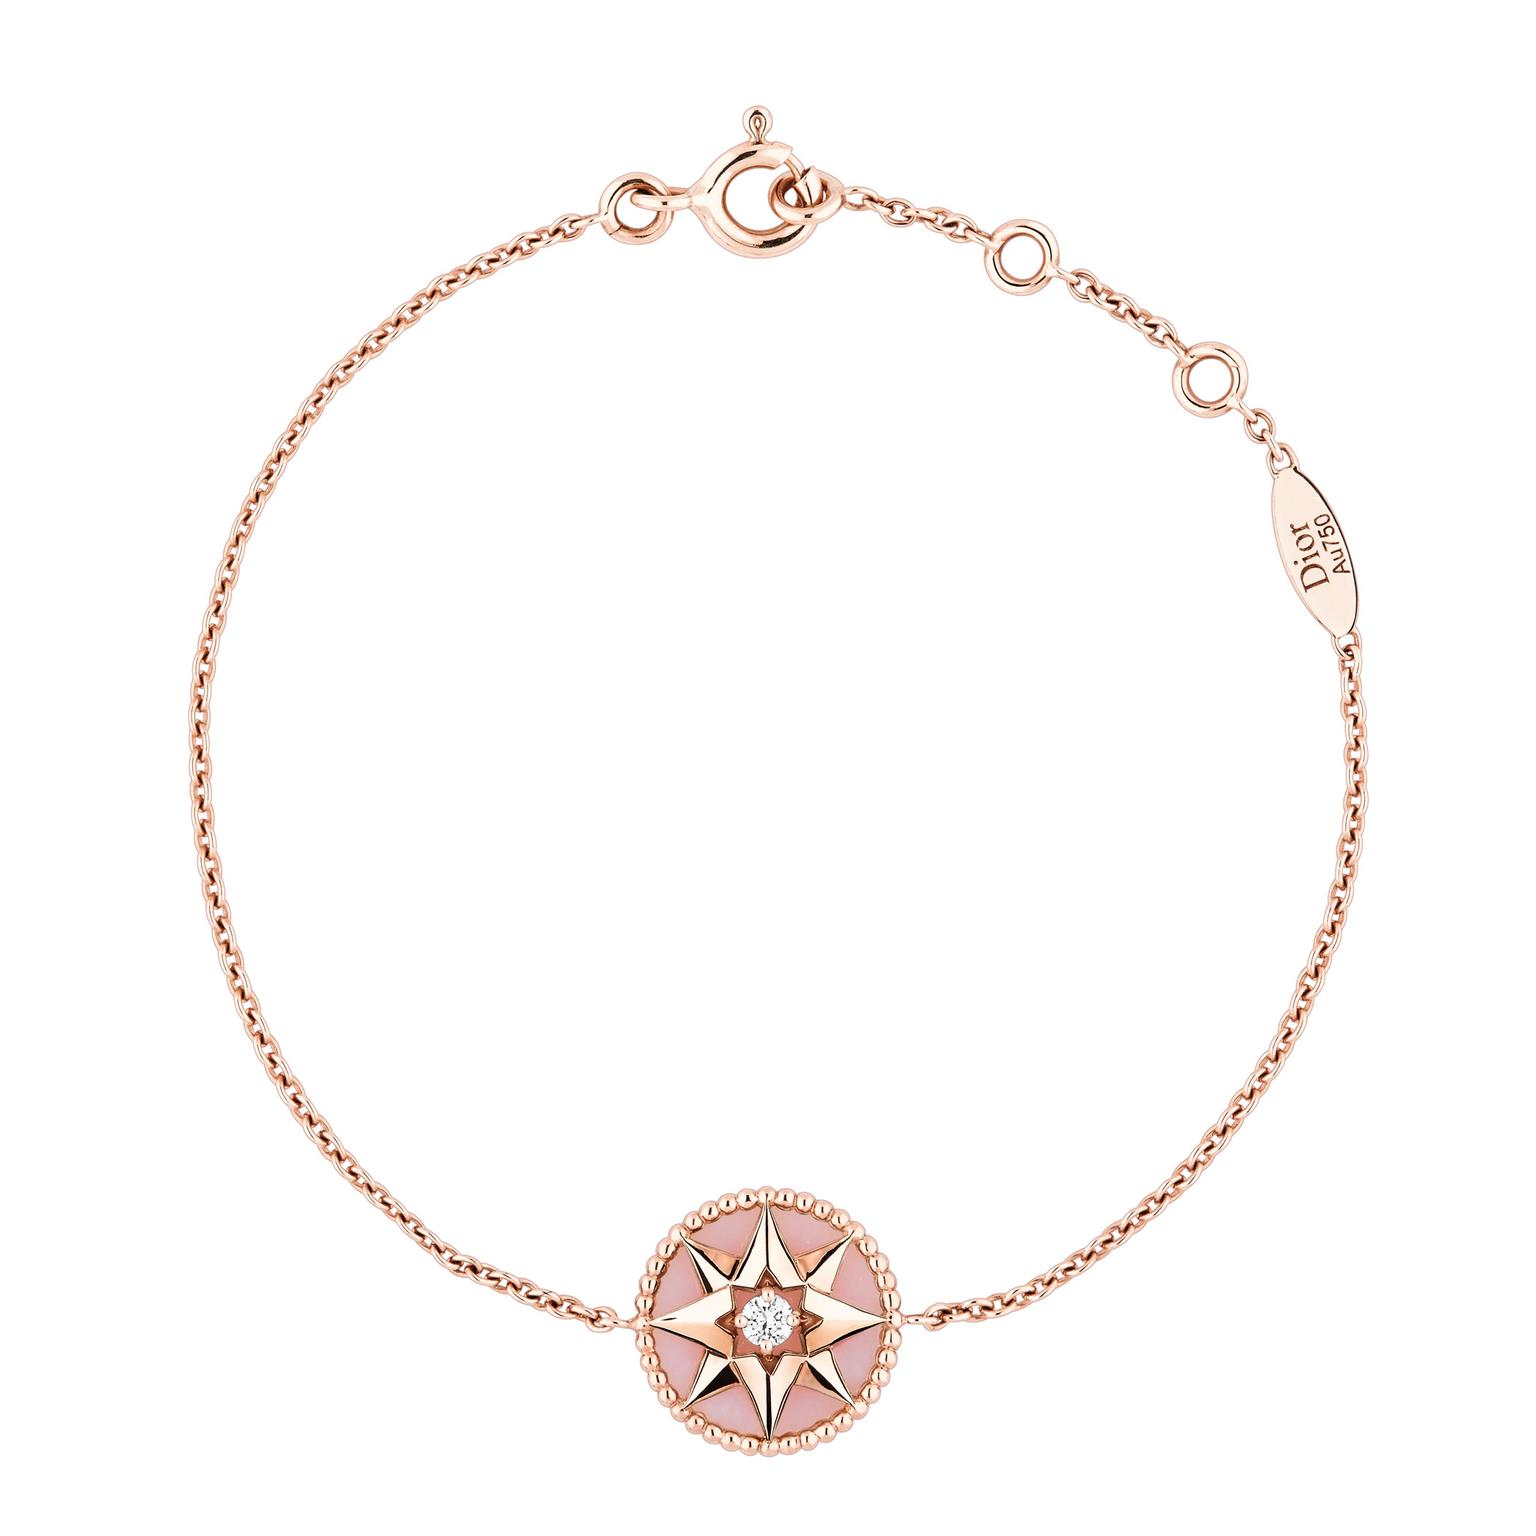 Dior Rose Des Vents pink gold pink opal and diamond bracelet_zoom